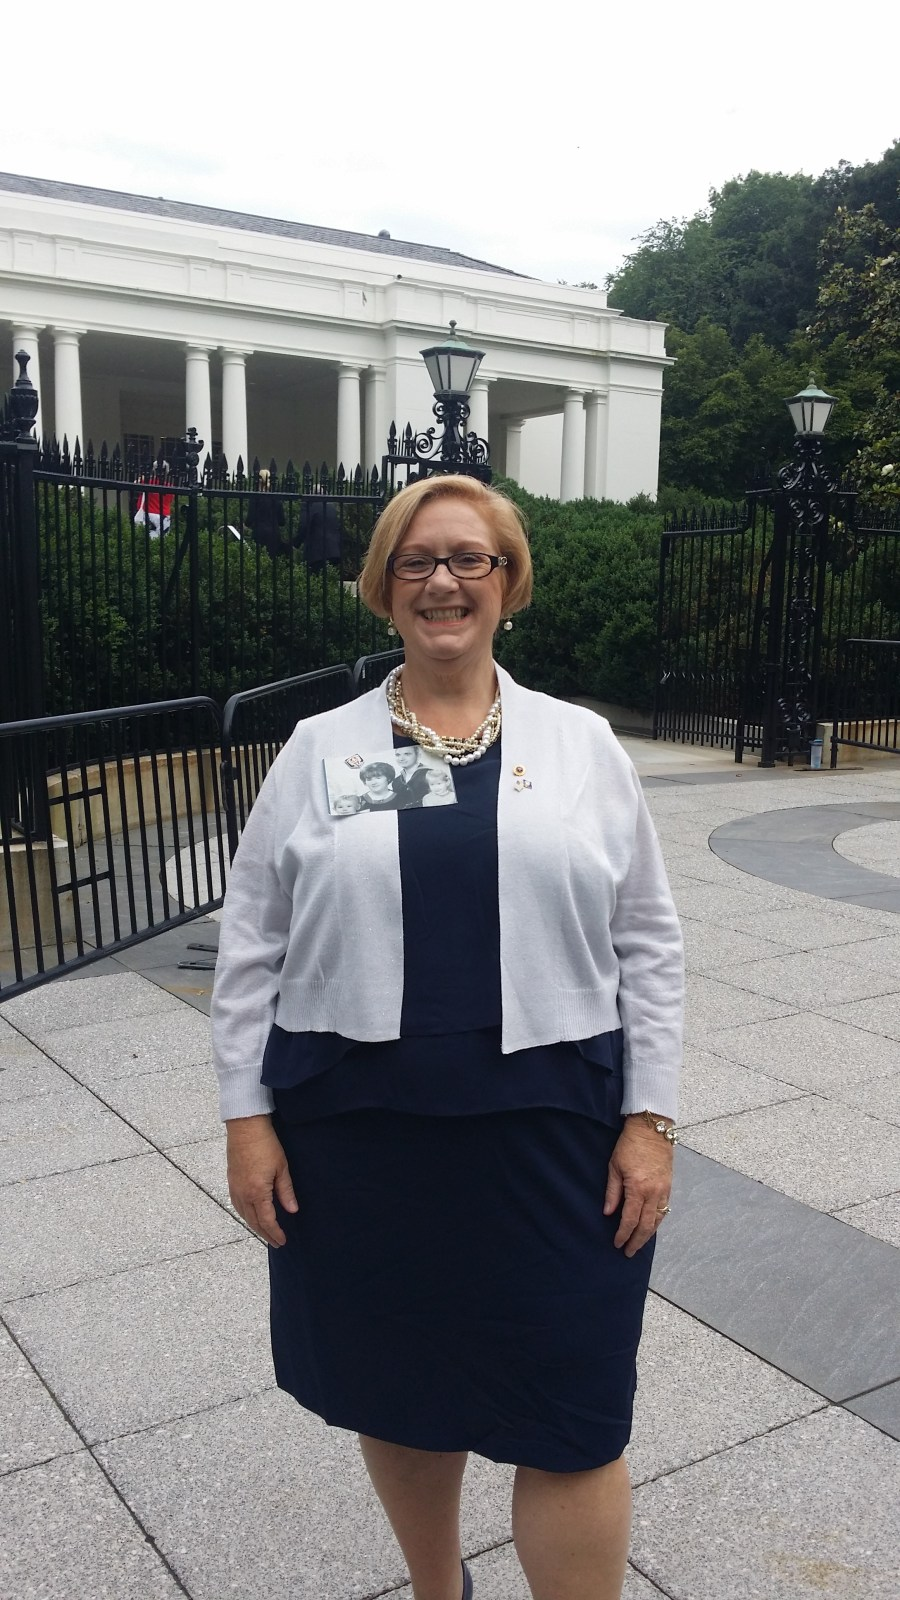 Susan outside the private guest entrance to The White House. Photo courtesy Susan Mitchell-